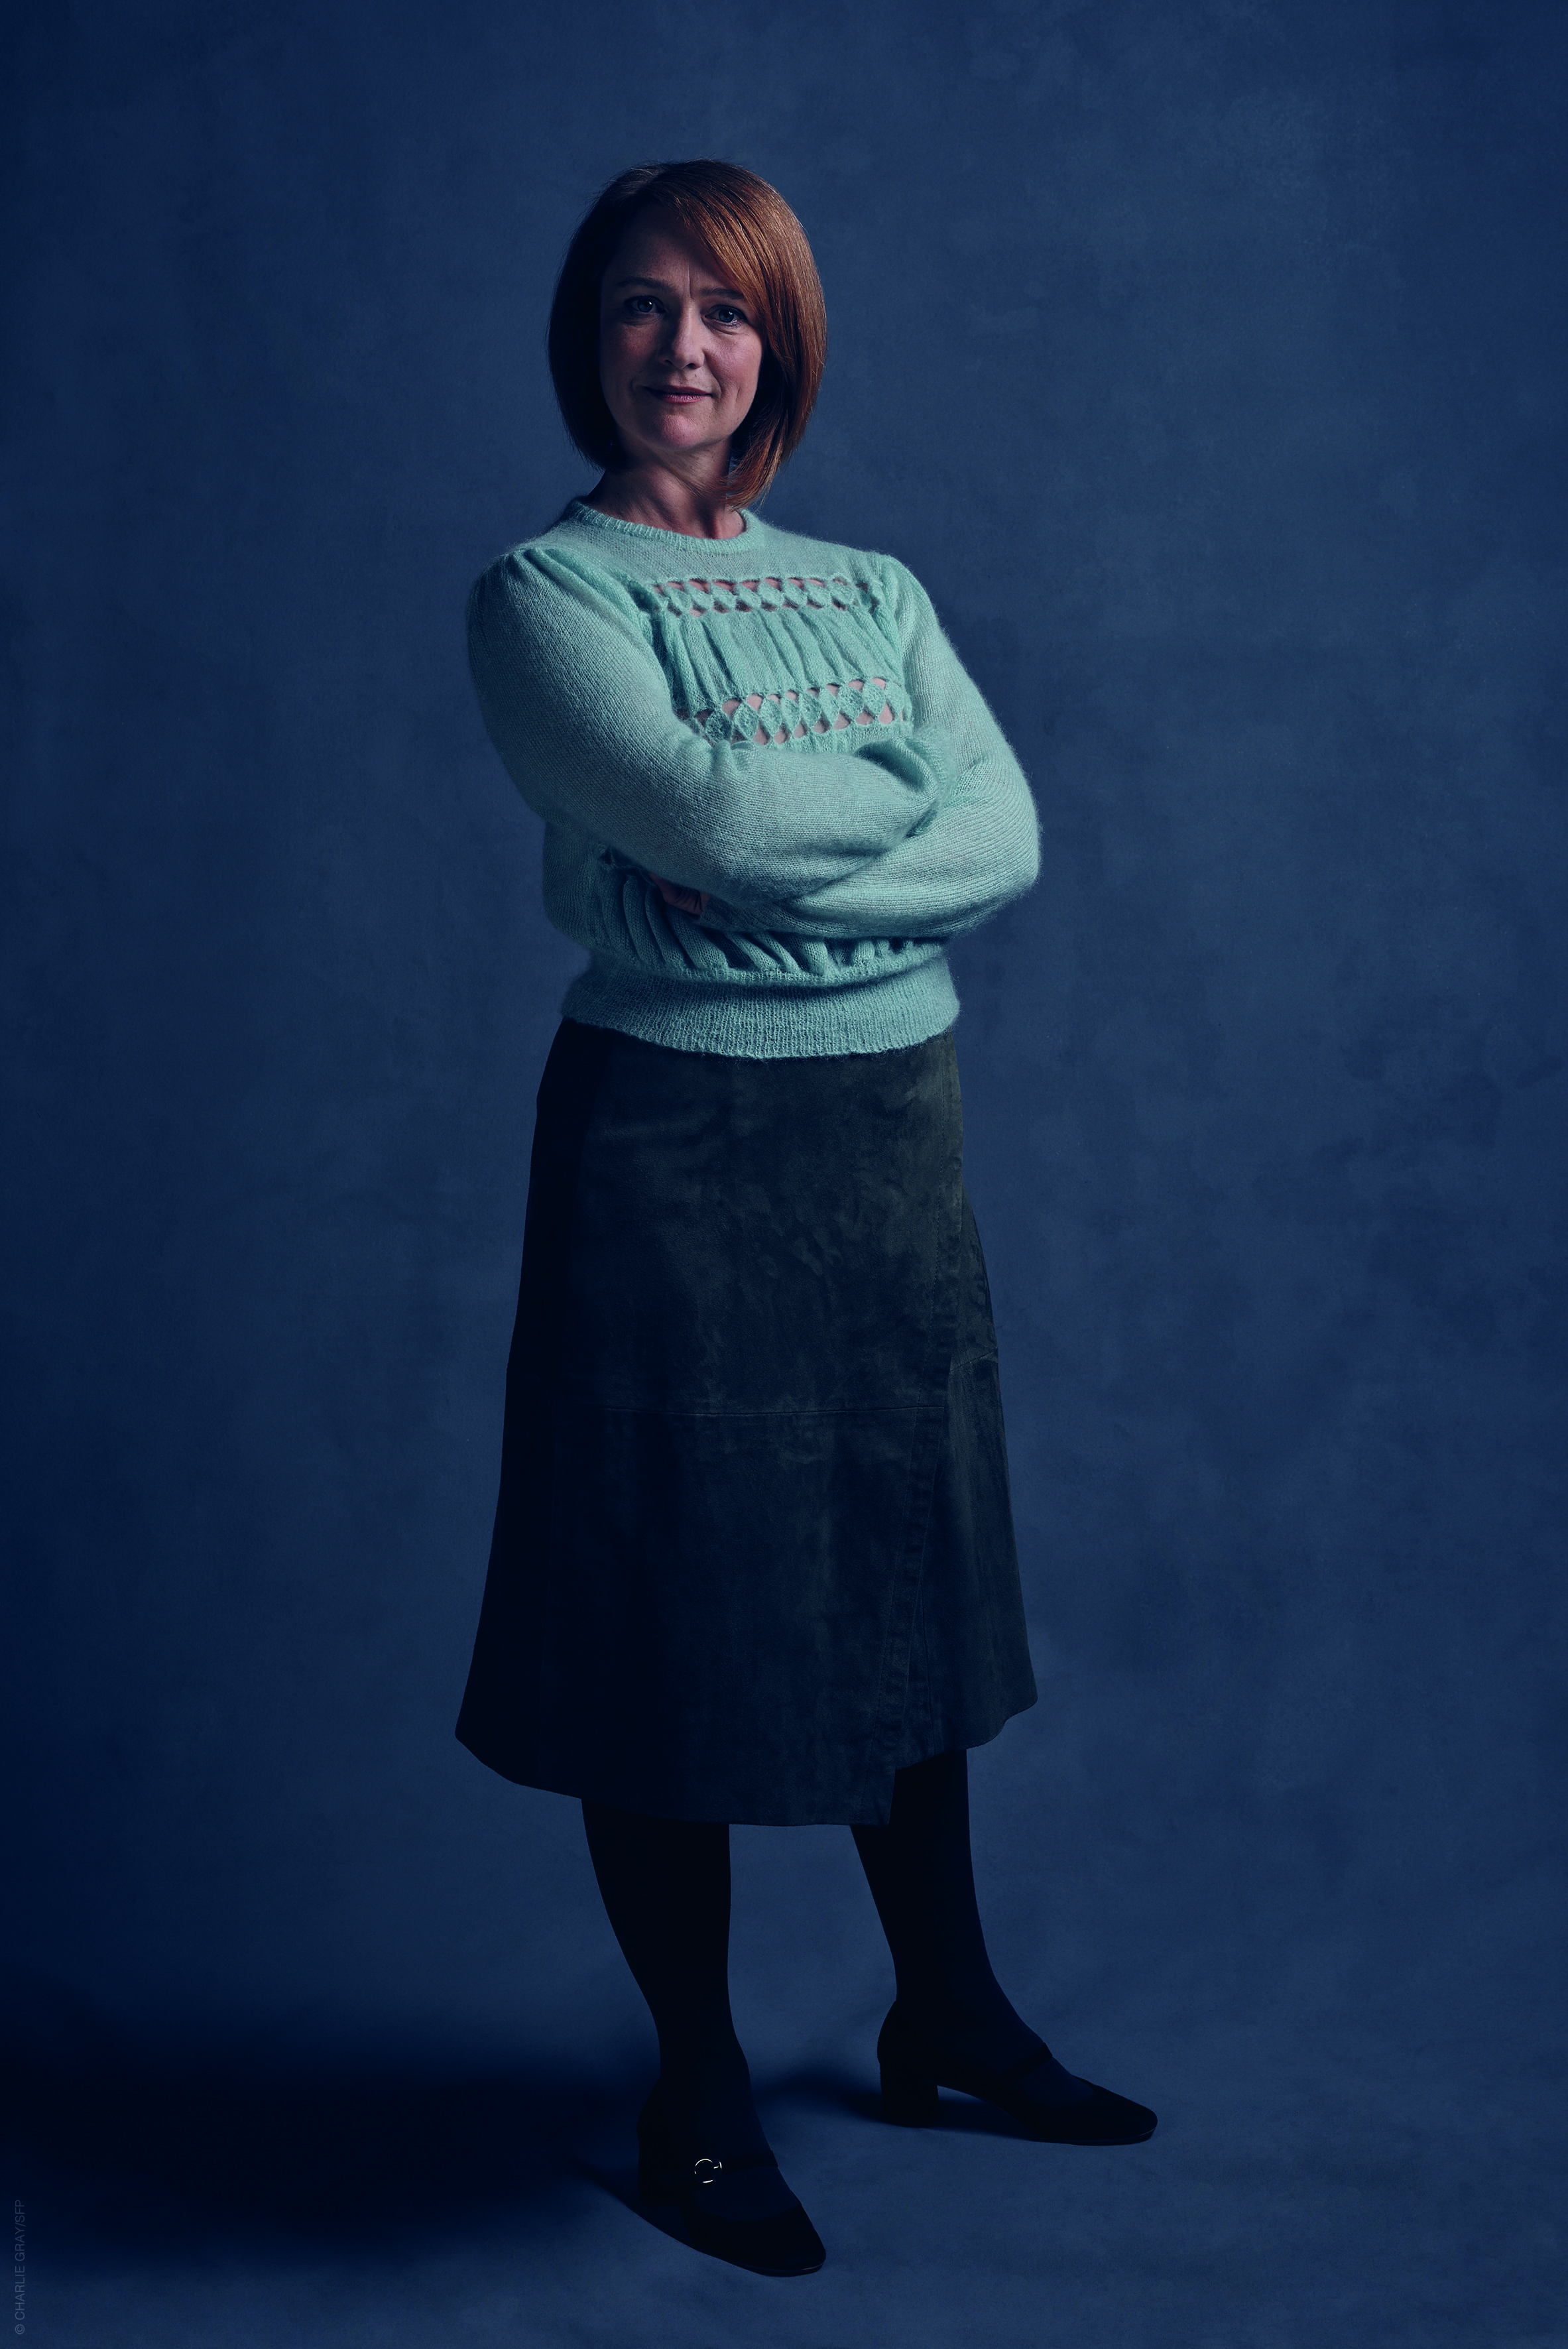 Ginevra Potter from Cursed Child - PM.jpg